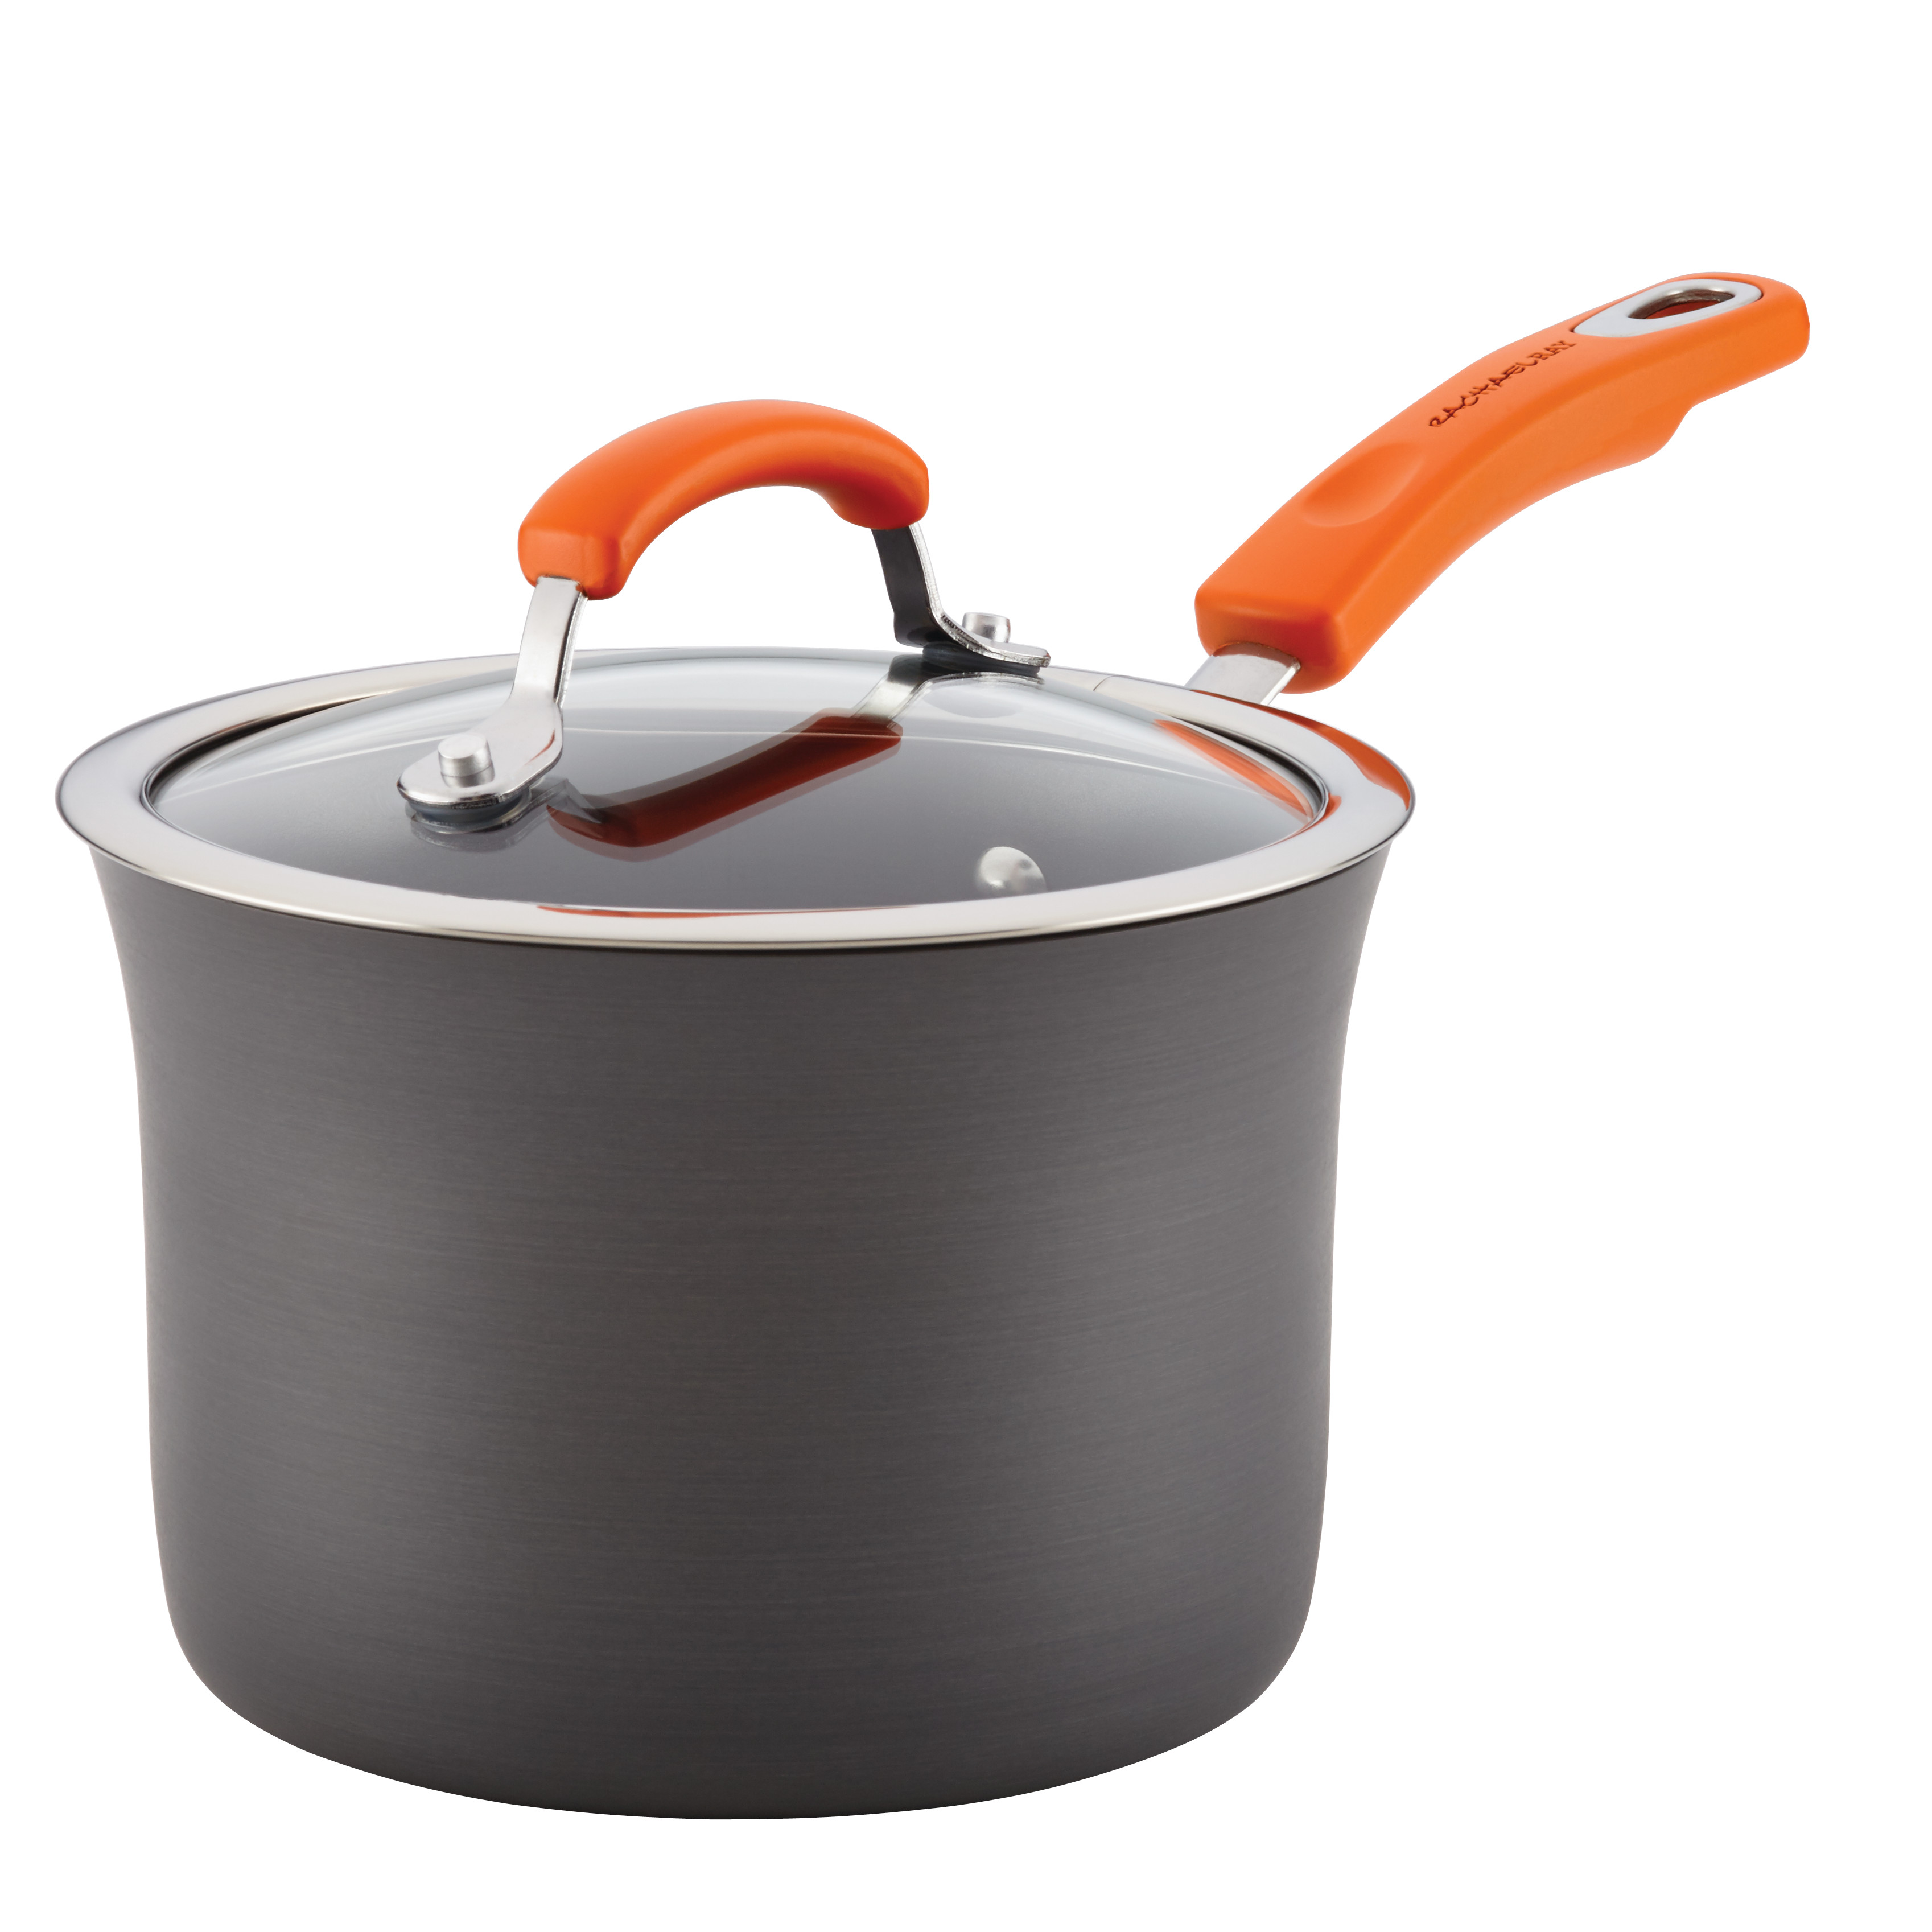 Rachael Ray Hard-Anodized Aluminum Nonstick 3-Quart Covered Saucepan, Gray with Orange Handle